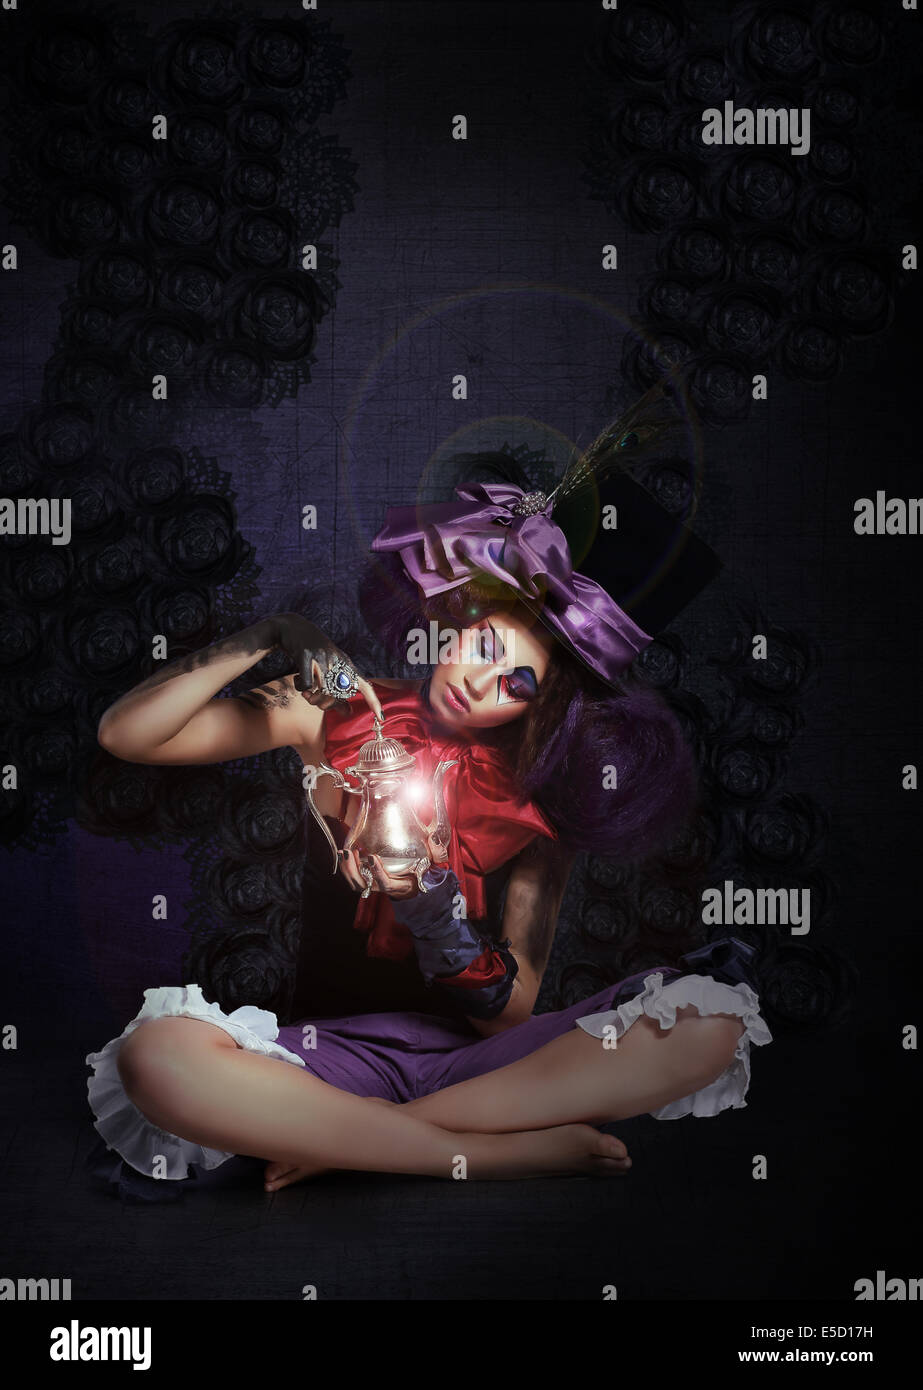 Witchcraft. Fairytale. Enigmatic Magus with Lamp in Darkness - Stock Image